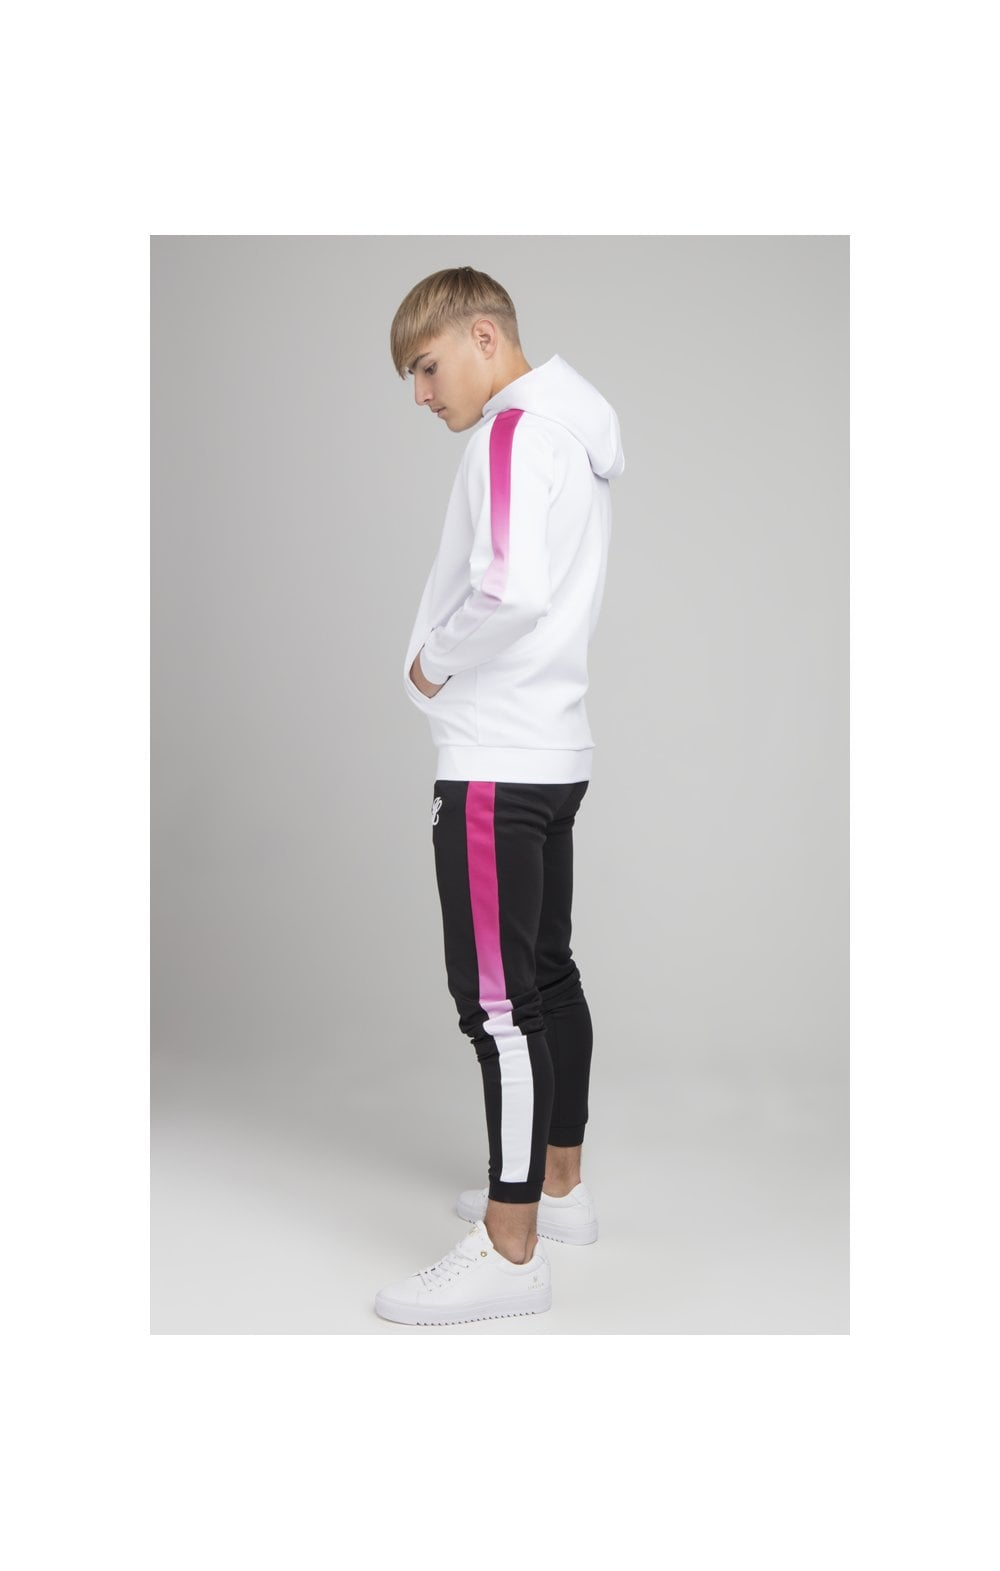 Illusive London Fade Panel Zip Through - White & Pink (2)